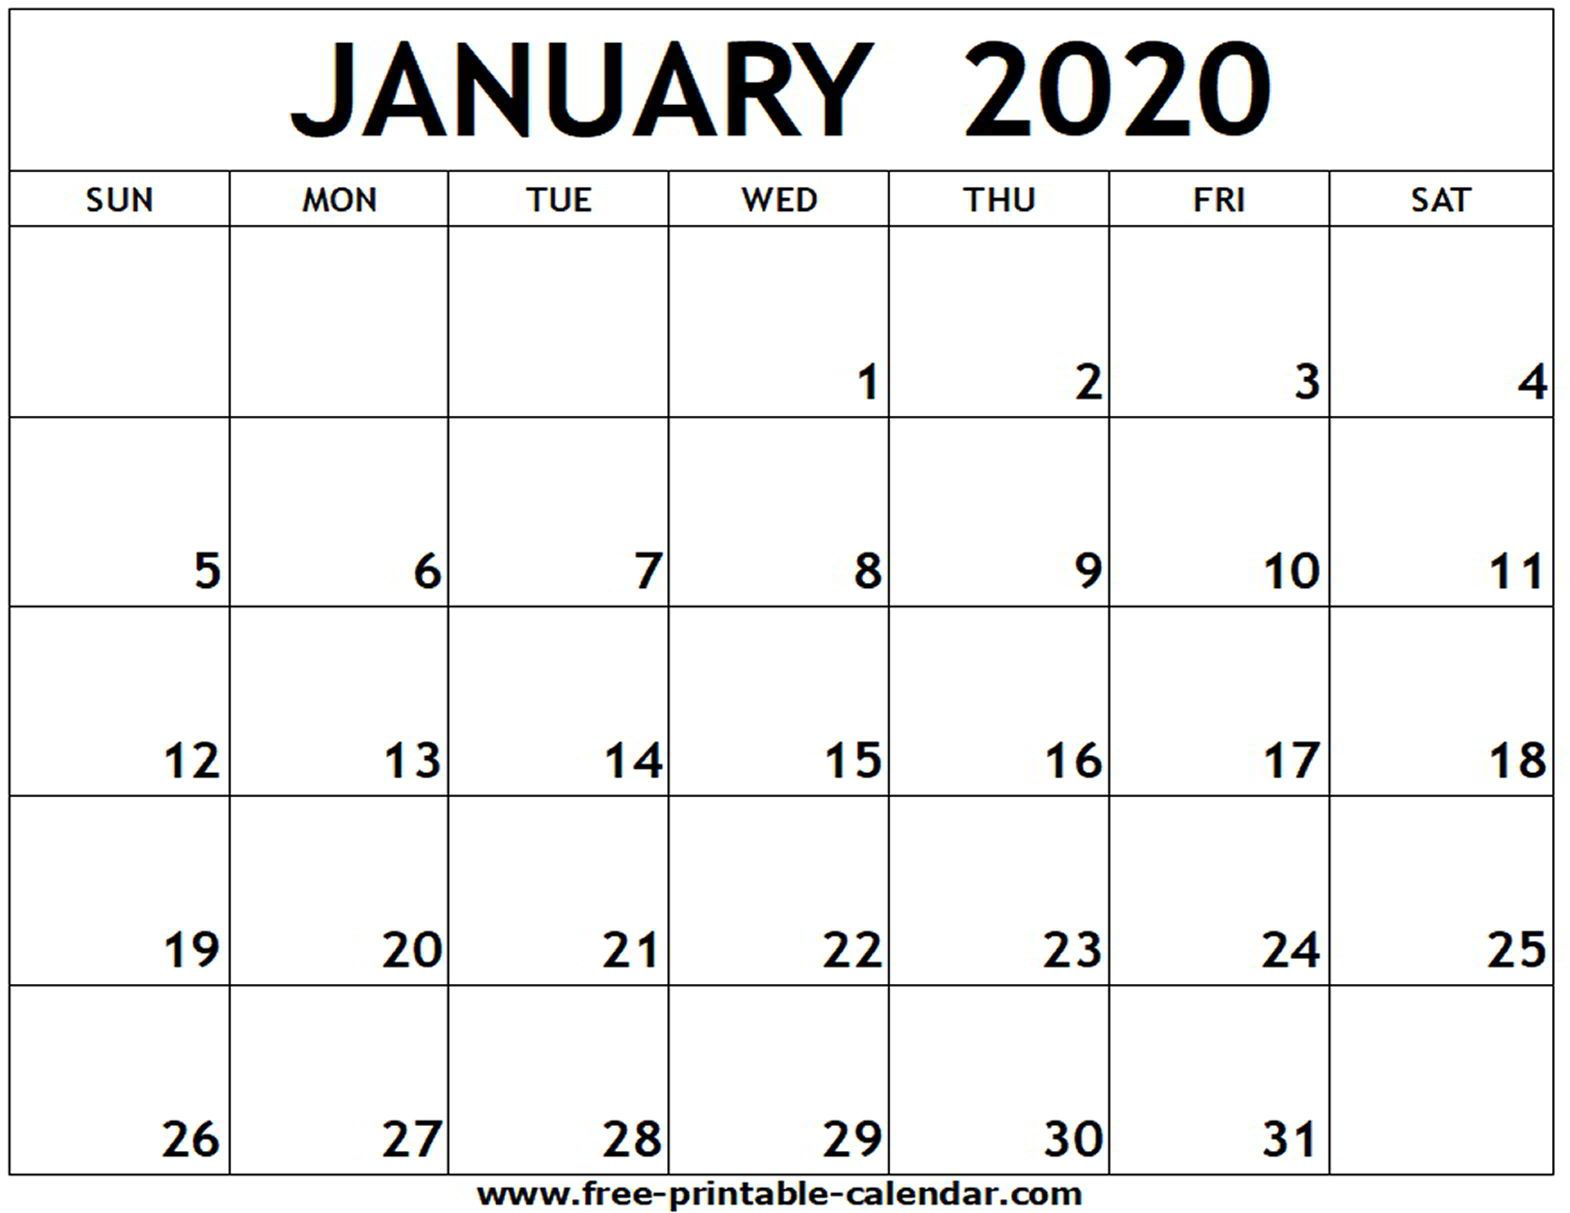 January 2020 Printable Calendar  Freeprintablecalendar throughout January 2020 Printable Calendar